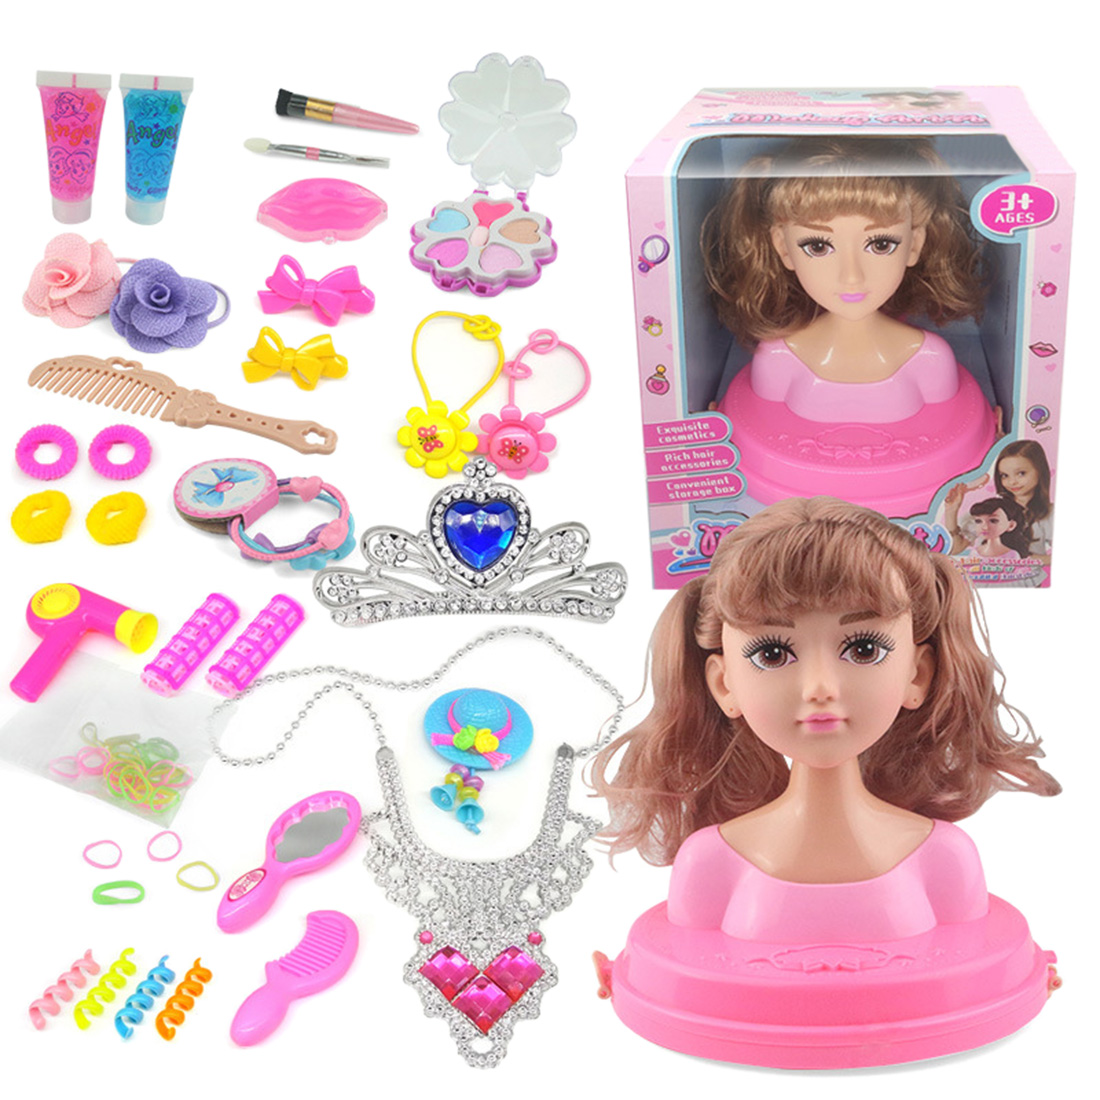 Children Doll Deluxe Styling Head Makeup Hairstyle Play Toy - Big Wave, Double Ponytail + Air Bangs /Straight Hair + Neat Bangs